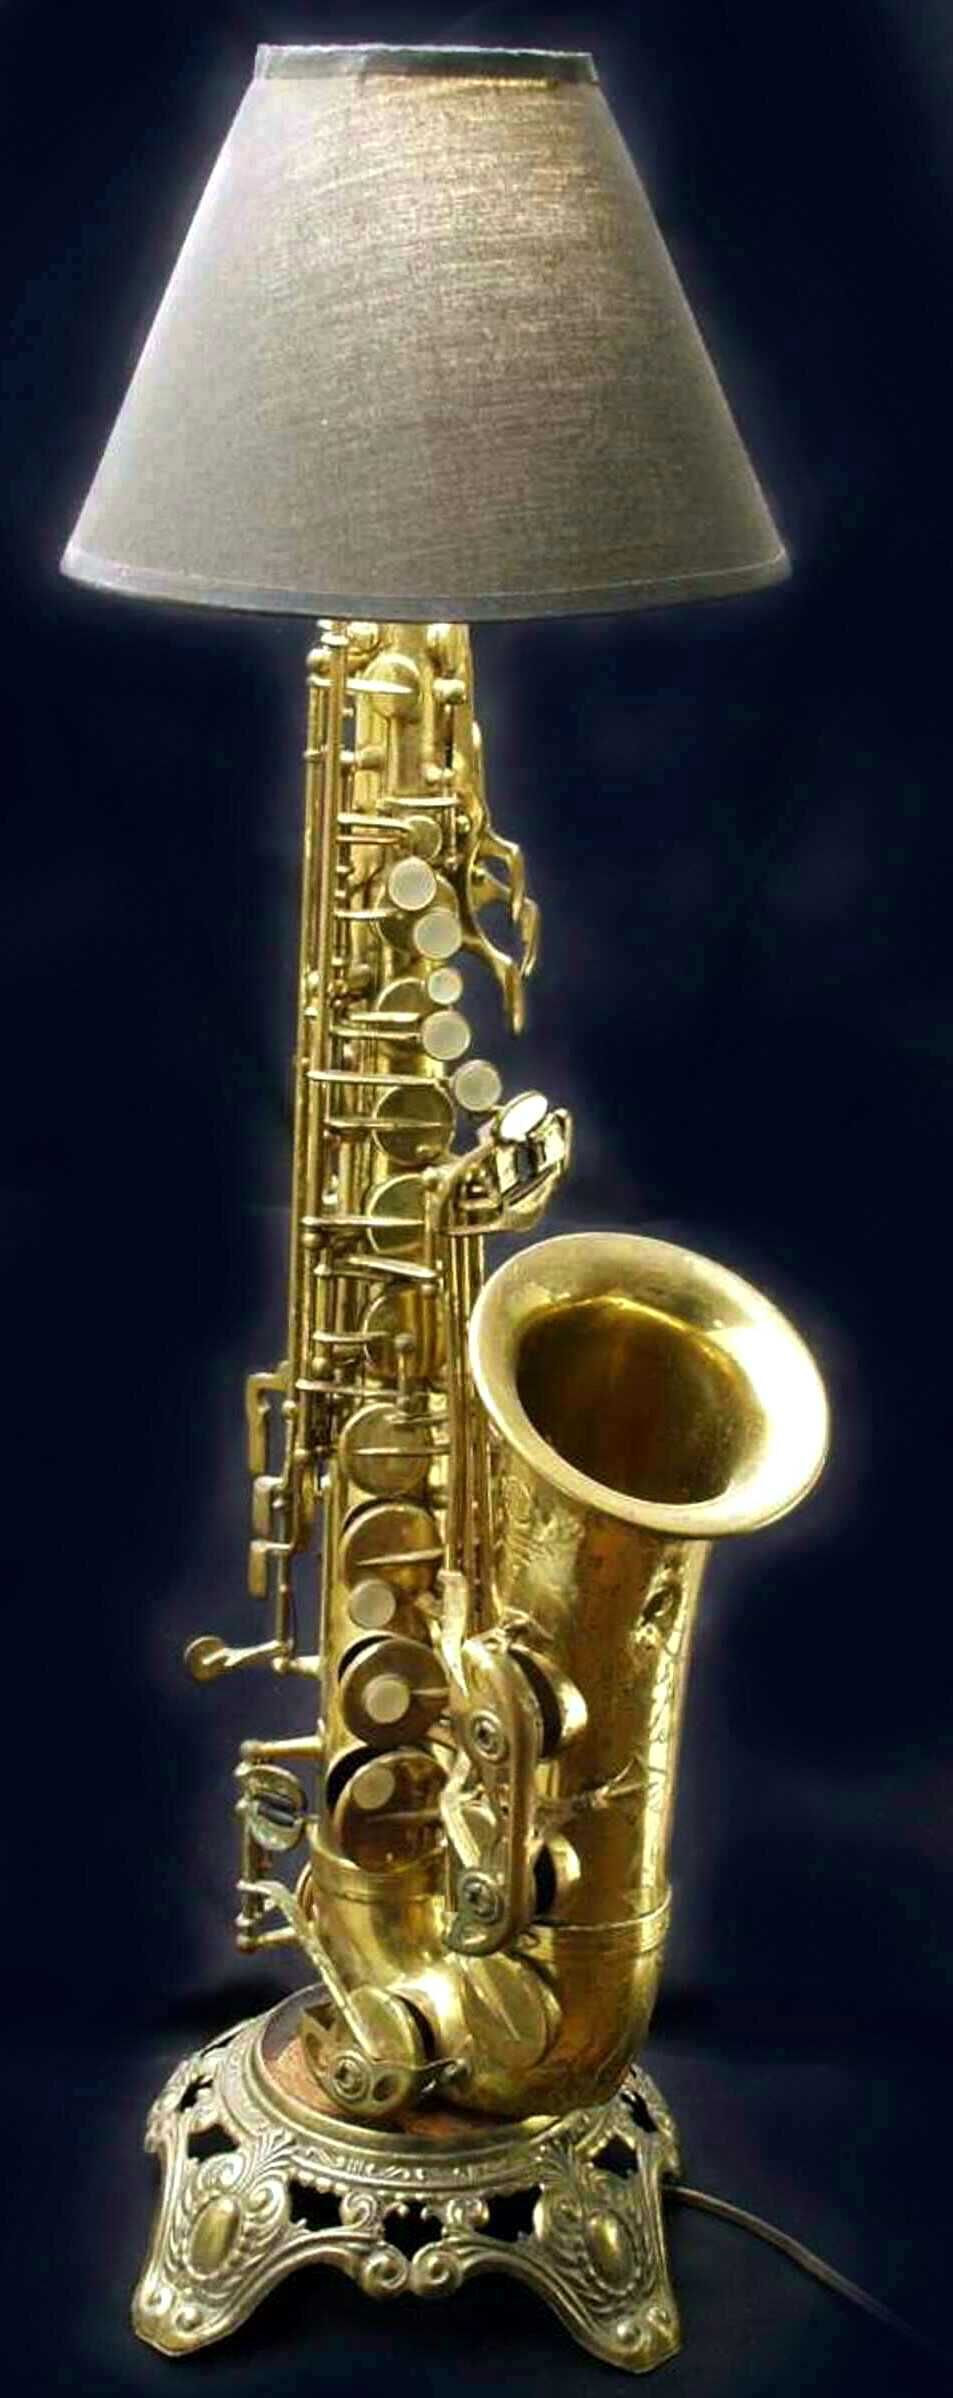 Learn the Saxophone - how to play this amazing instrument.